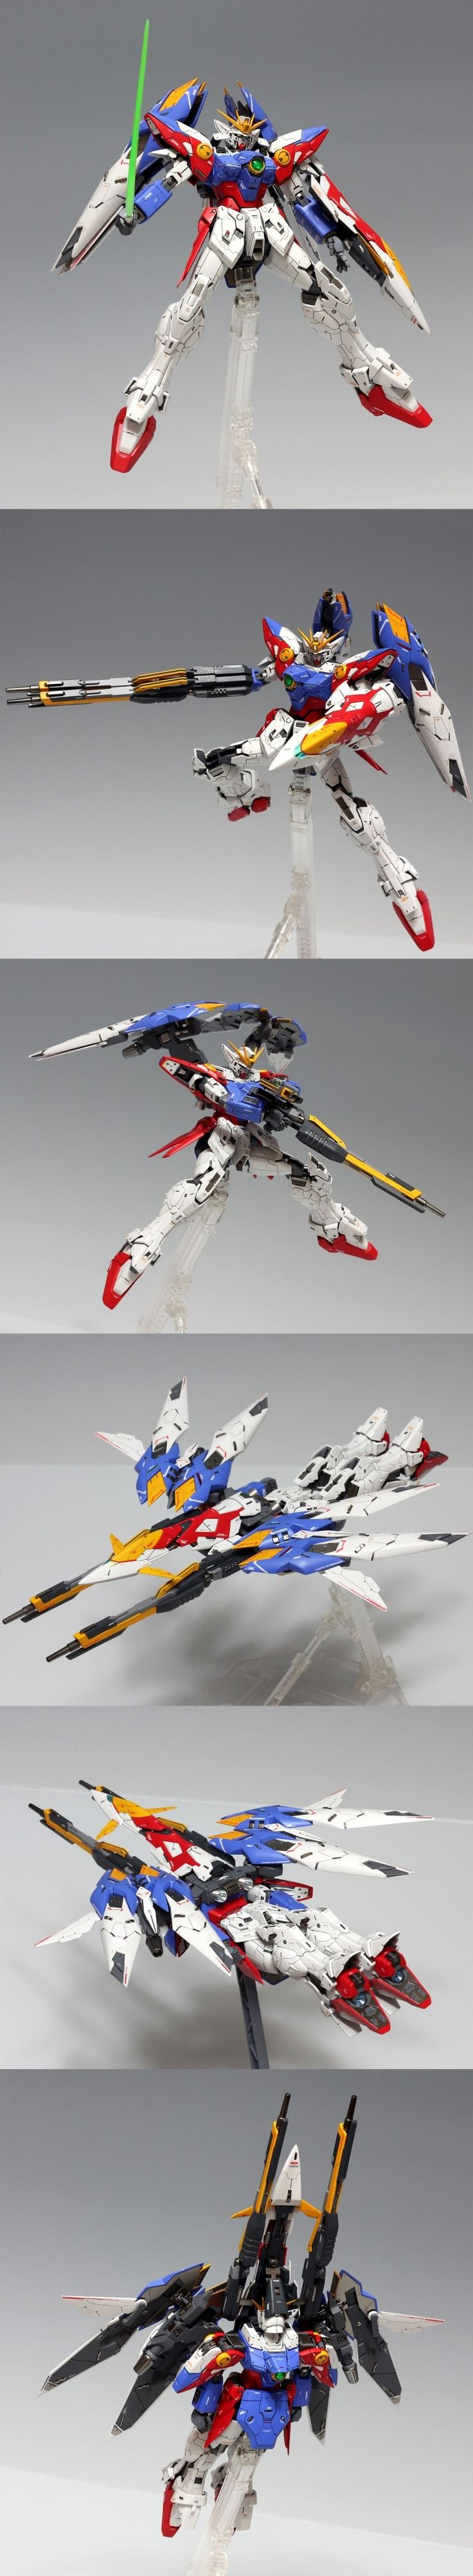 """MG 1/100 Wing Gundam Proto Zero [High Detail]: Remodeling Work by Team_Sky """"Karna"""". Full photoreview [WIP too] Many Wallpaper Size Images   GUNJAP"""